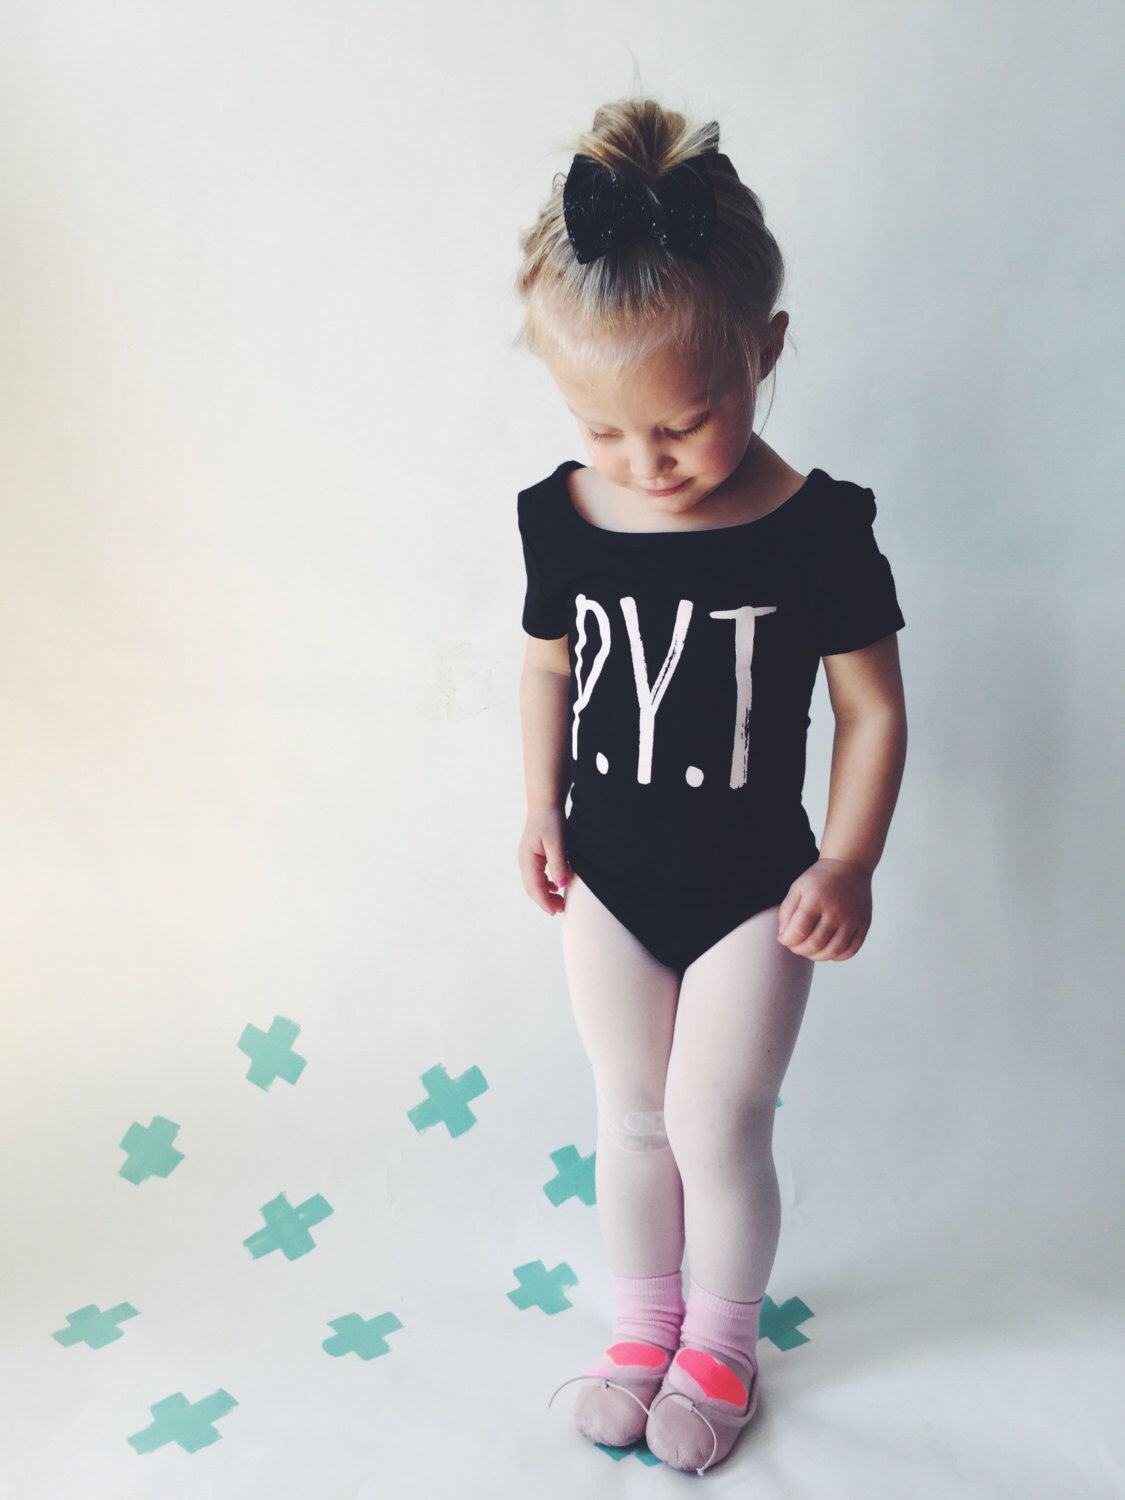 04bac59c8 TODDLER LEOTARD - P.Y.T - Black Girls Leotard